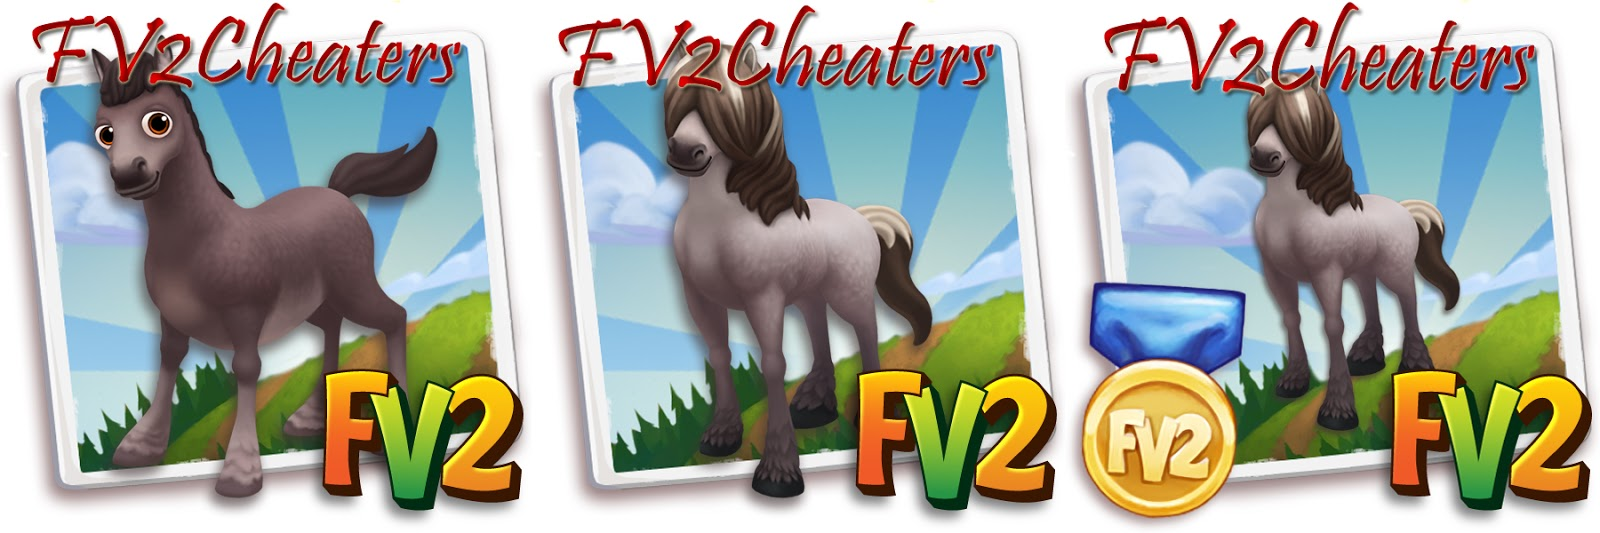 Farmville 2 Cheaters Farmville 2 Cheat Code For Grulla